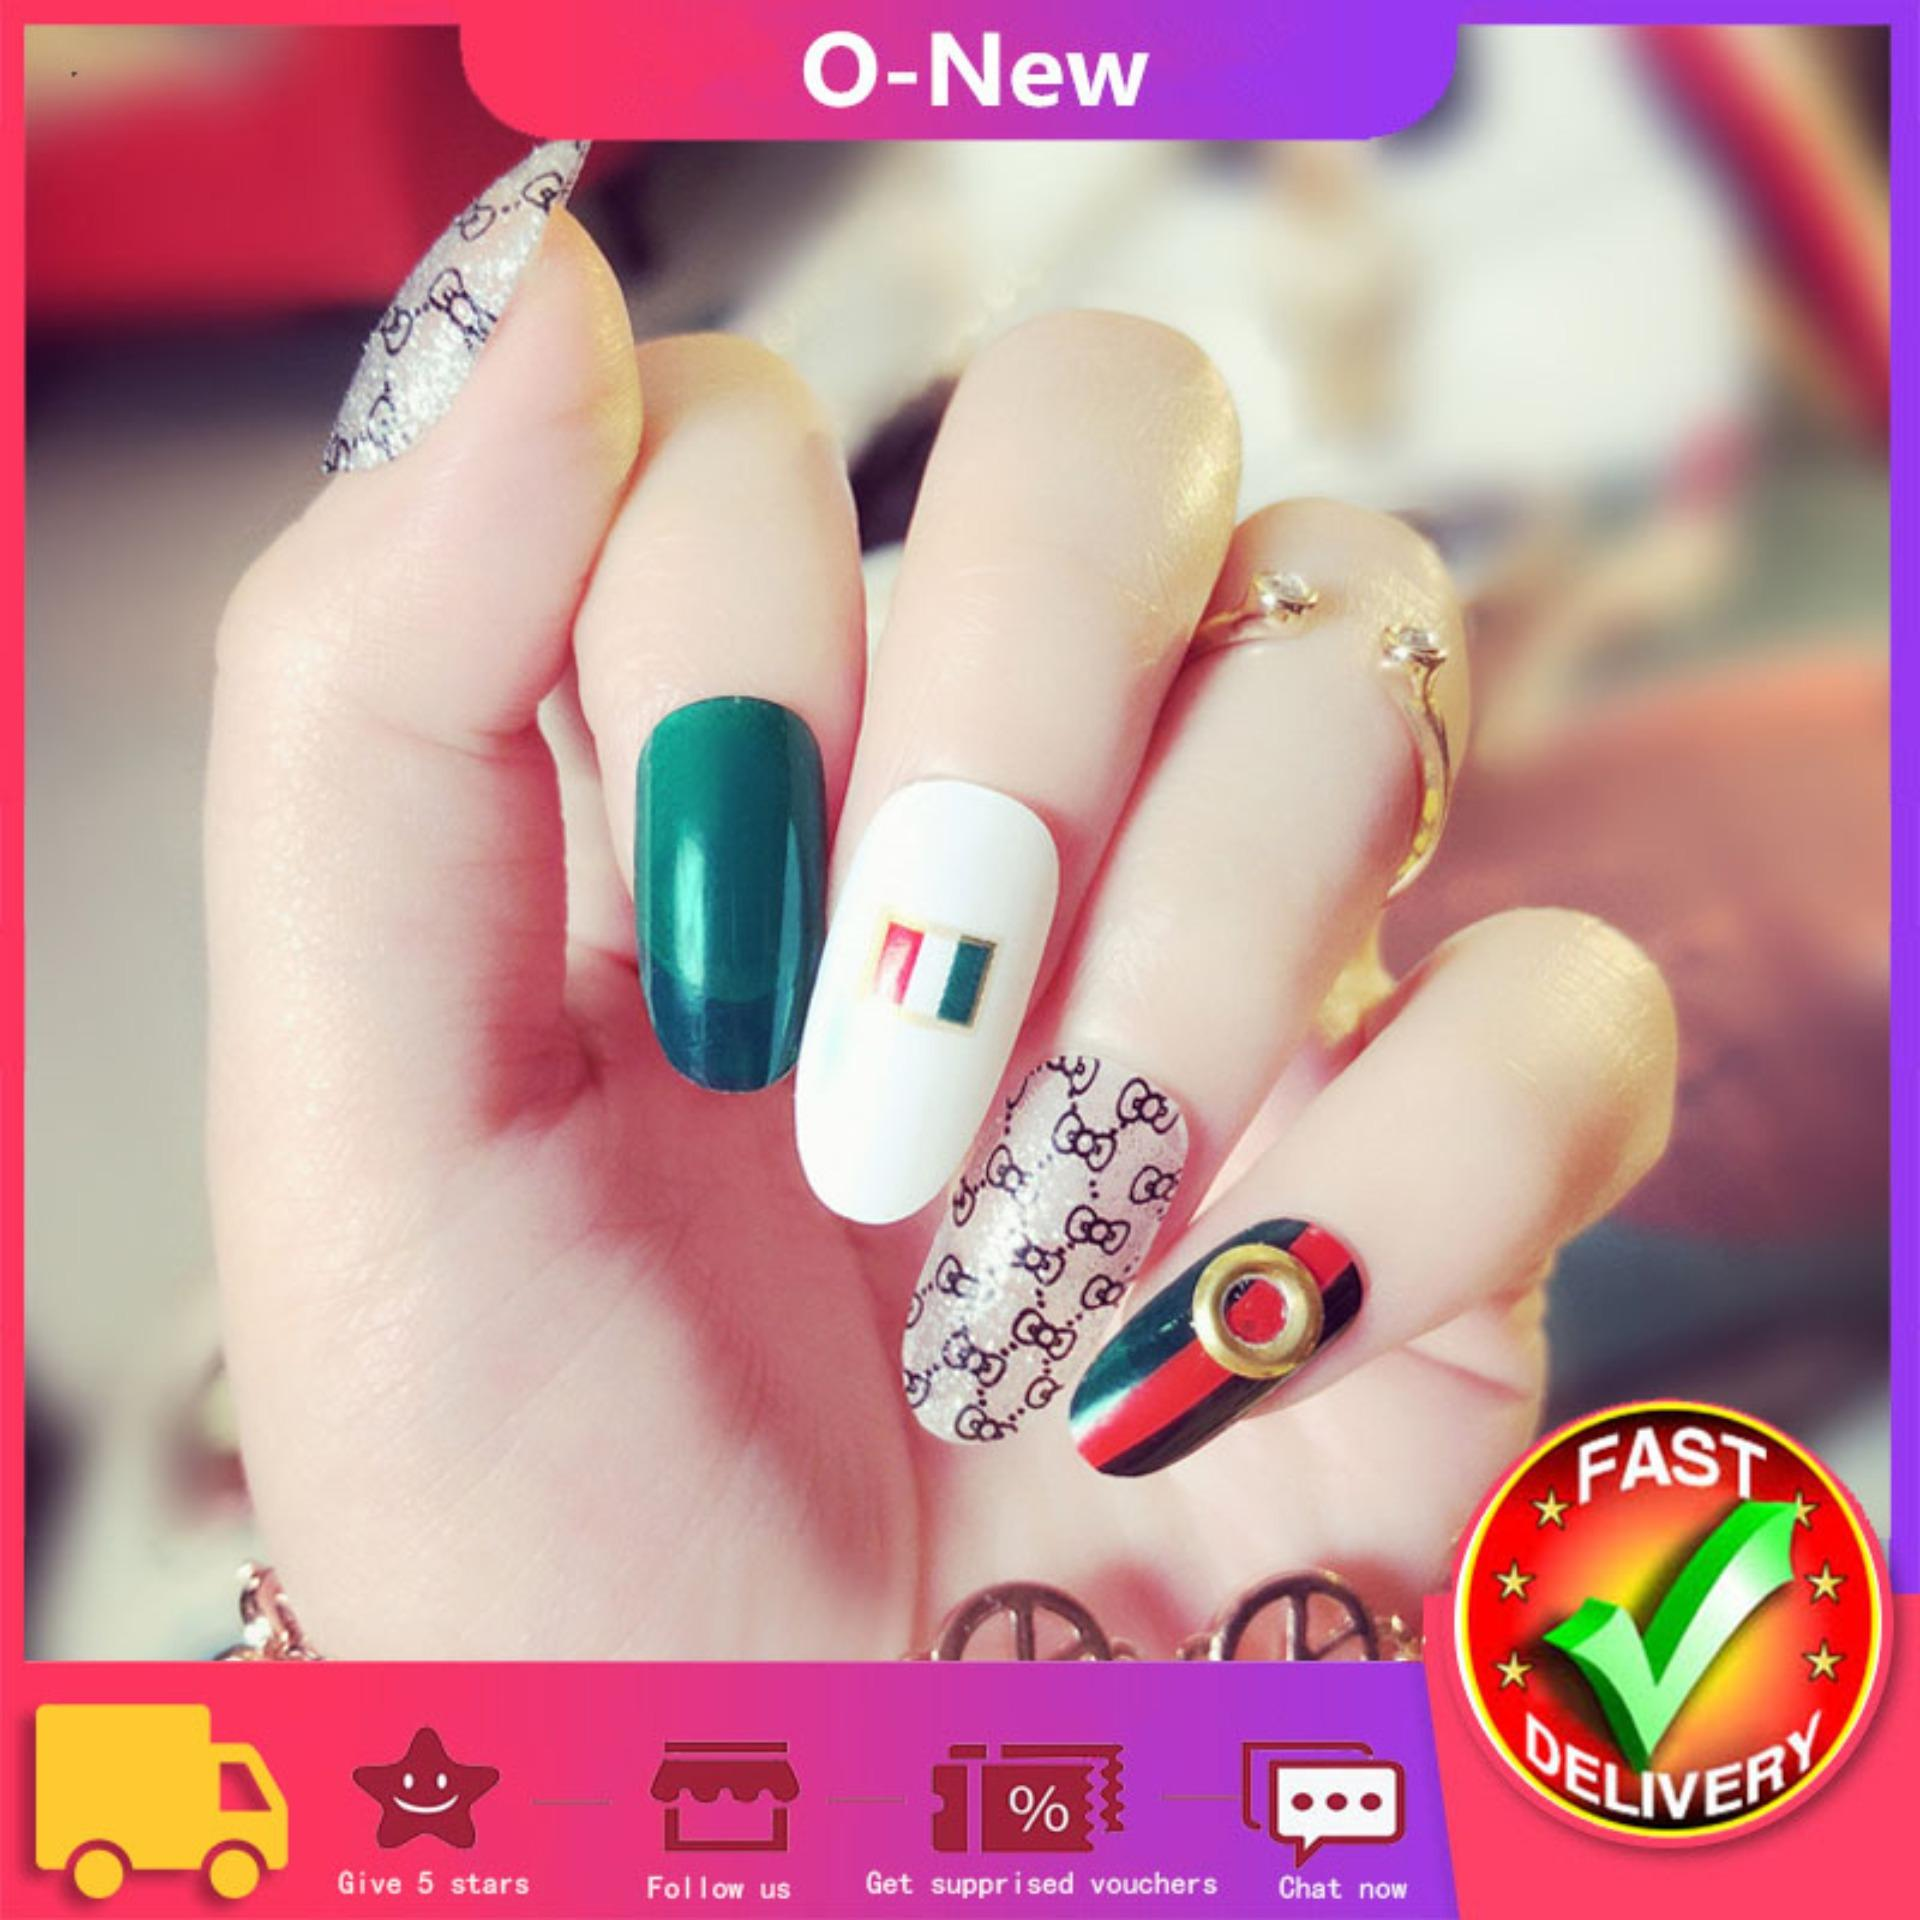 Artifical Nails Brands Acryllic Nails On Sale Prices Set